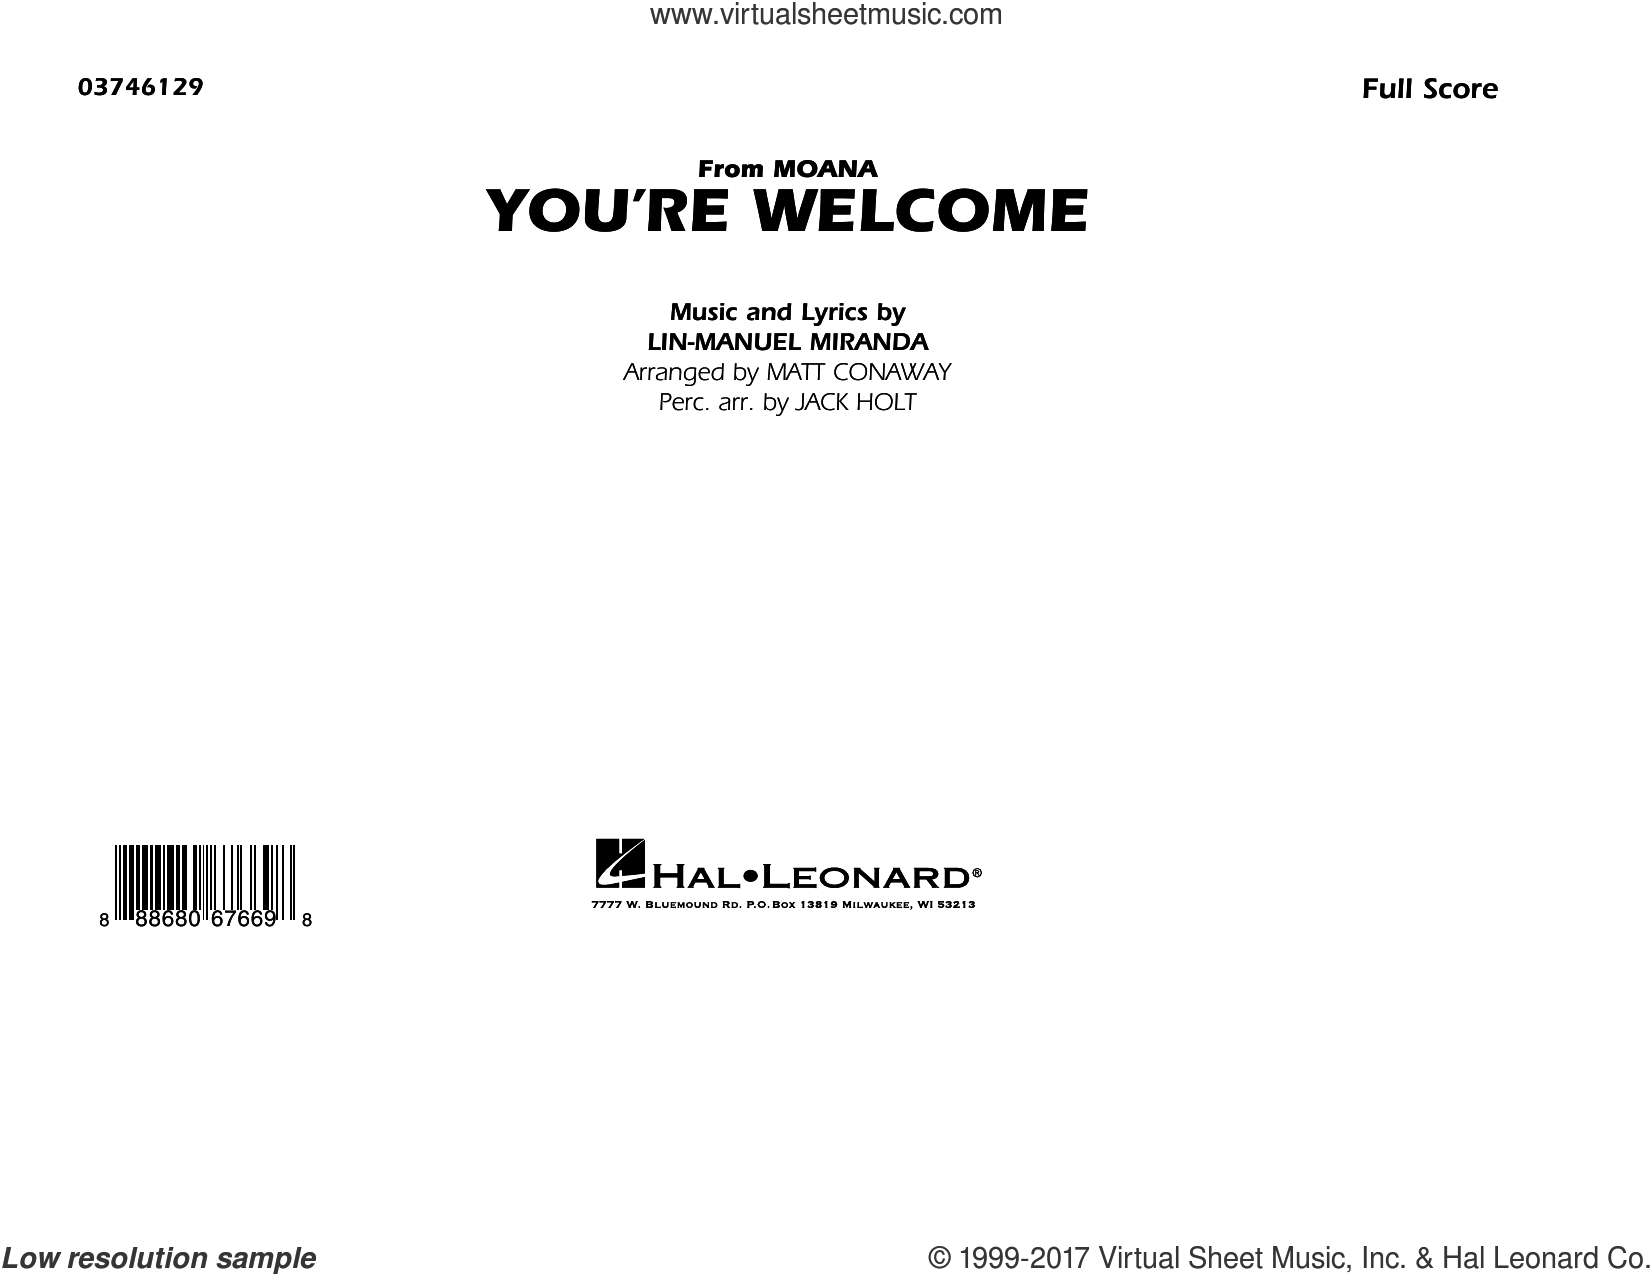 Miranda - You're Welcome (from Moana) sheet music (complete collection) for  marching band